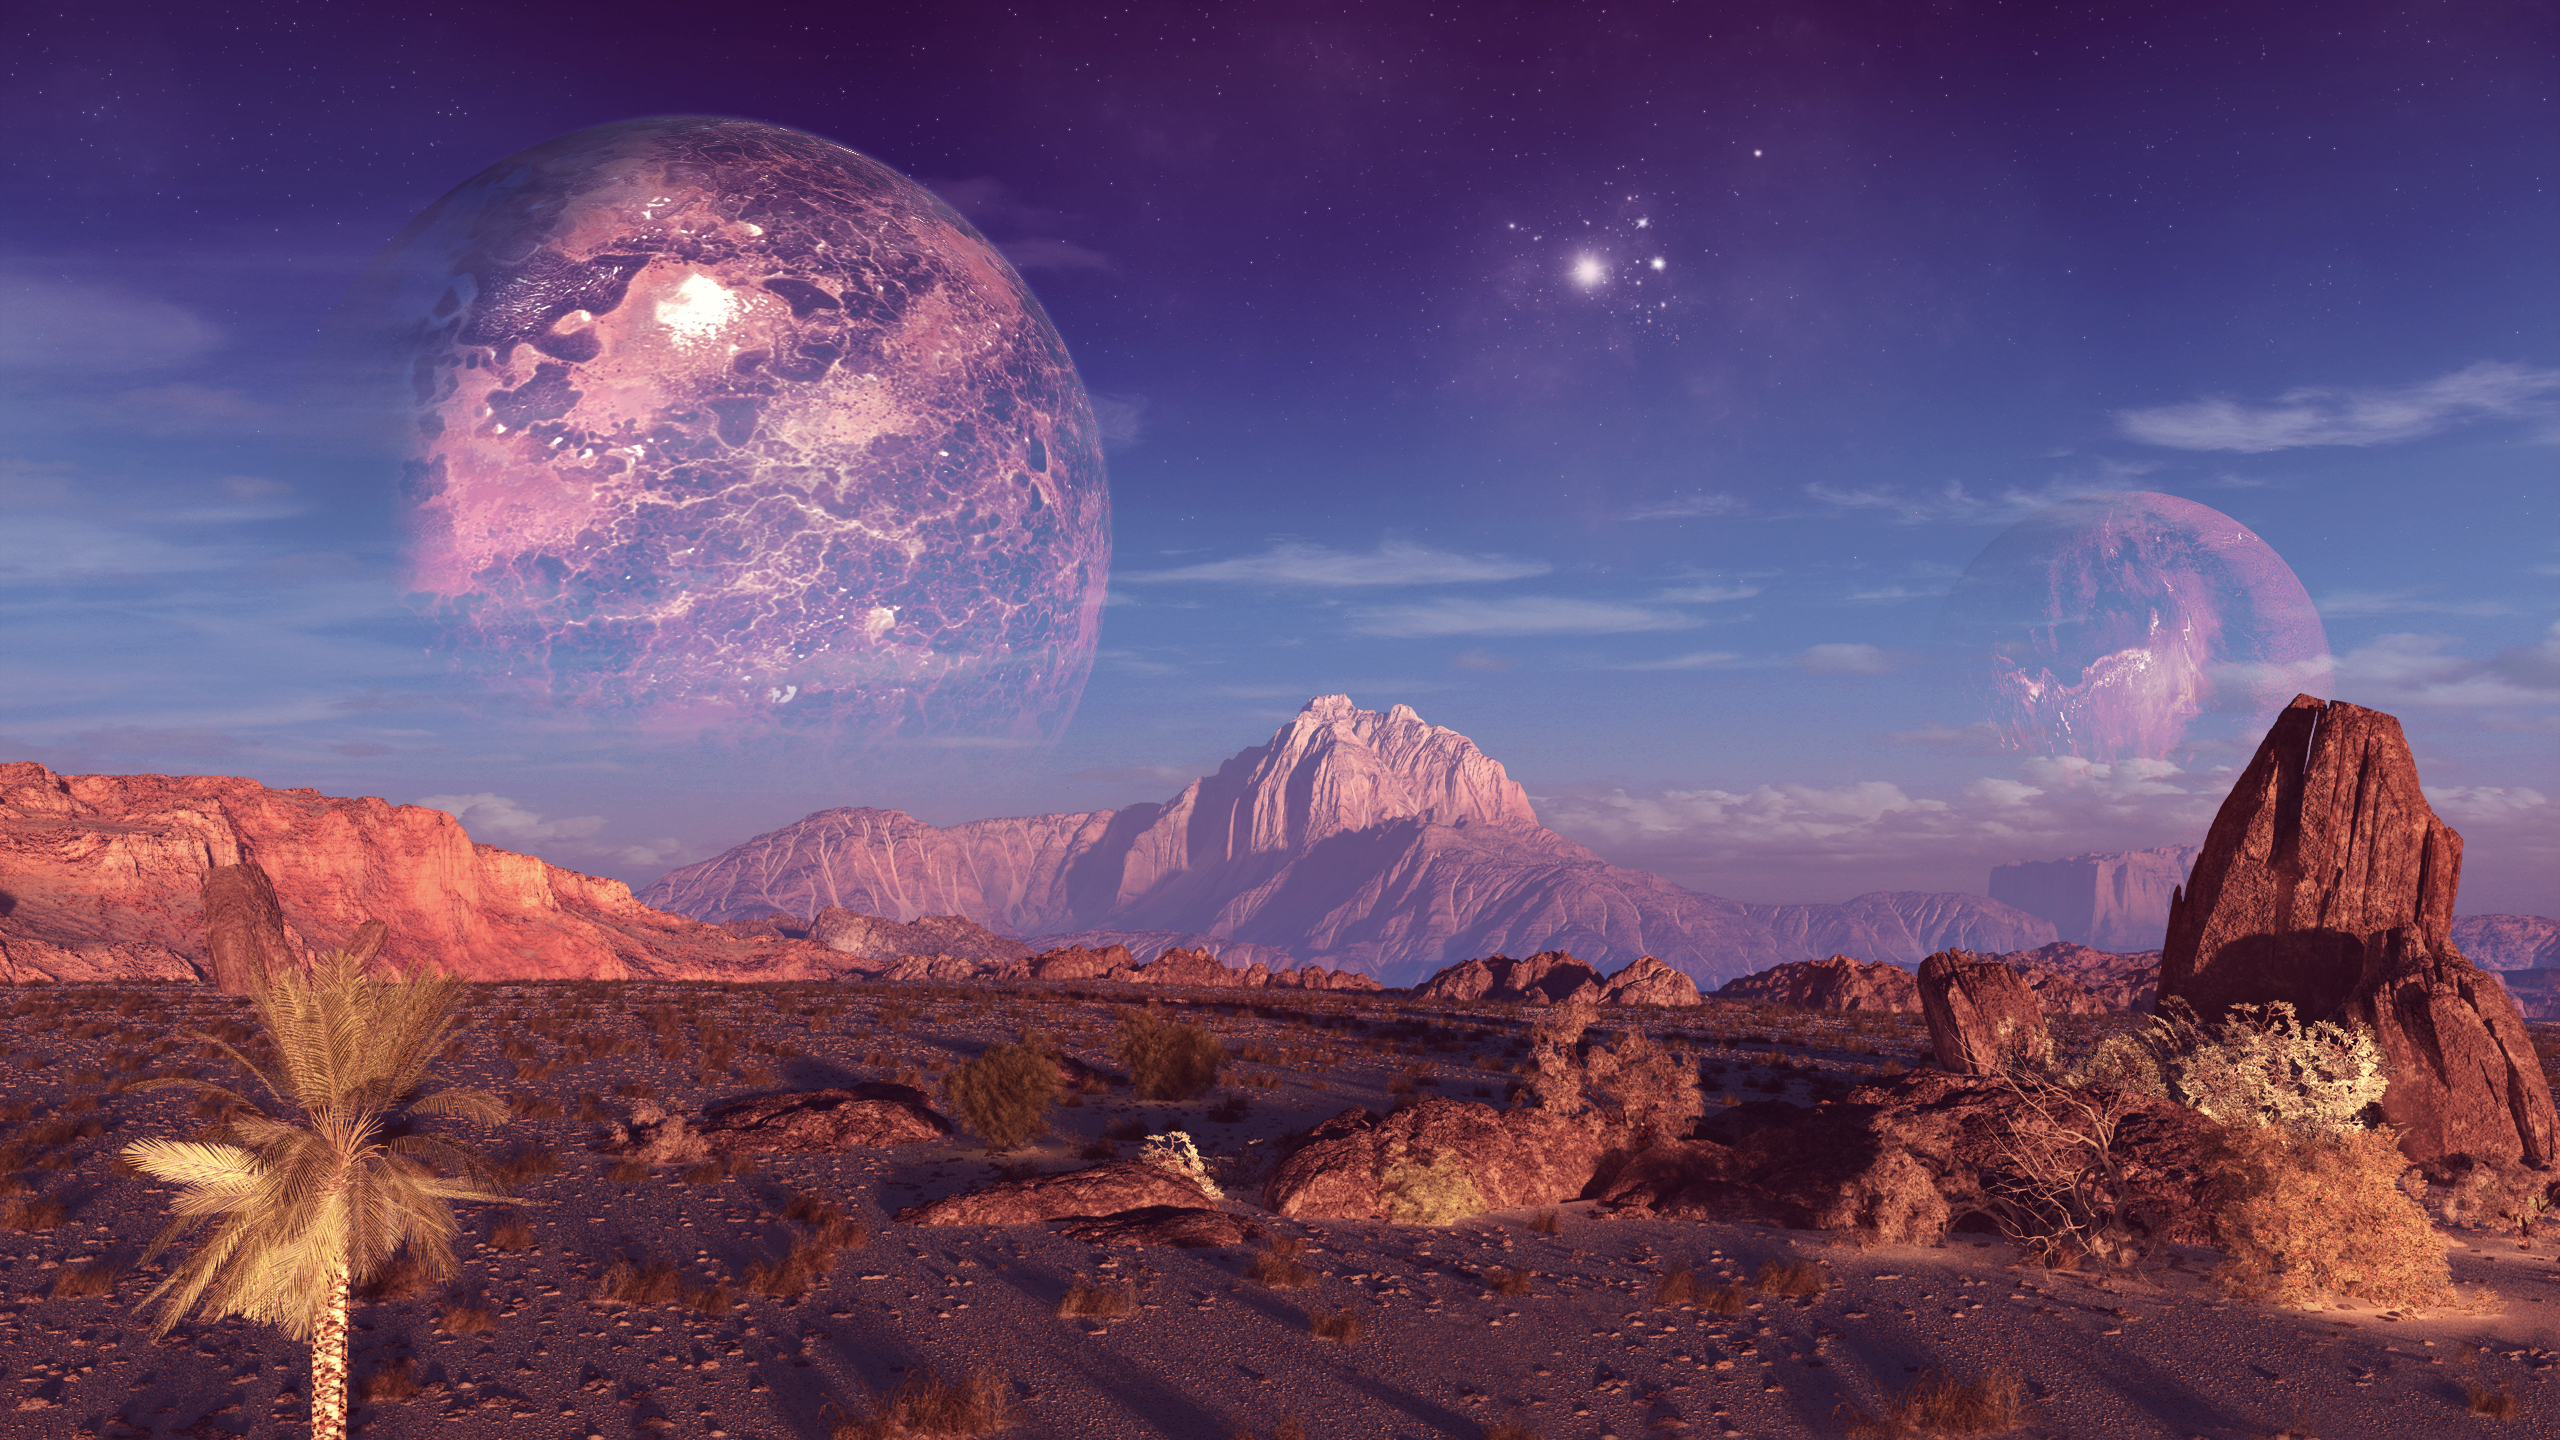 Planets HD Wallpaper | Background Image | 2560x1440 | ID ...